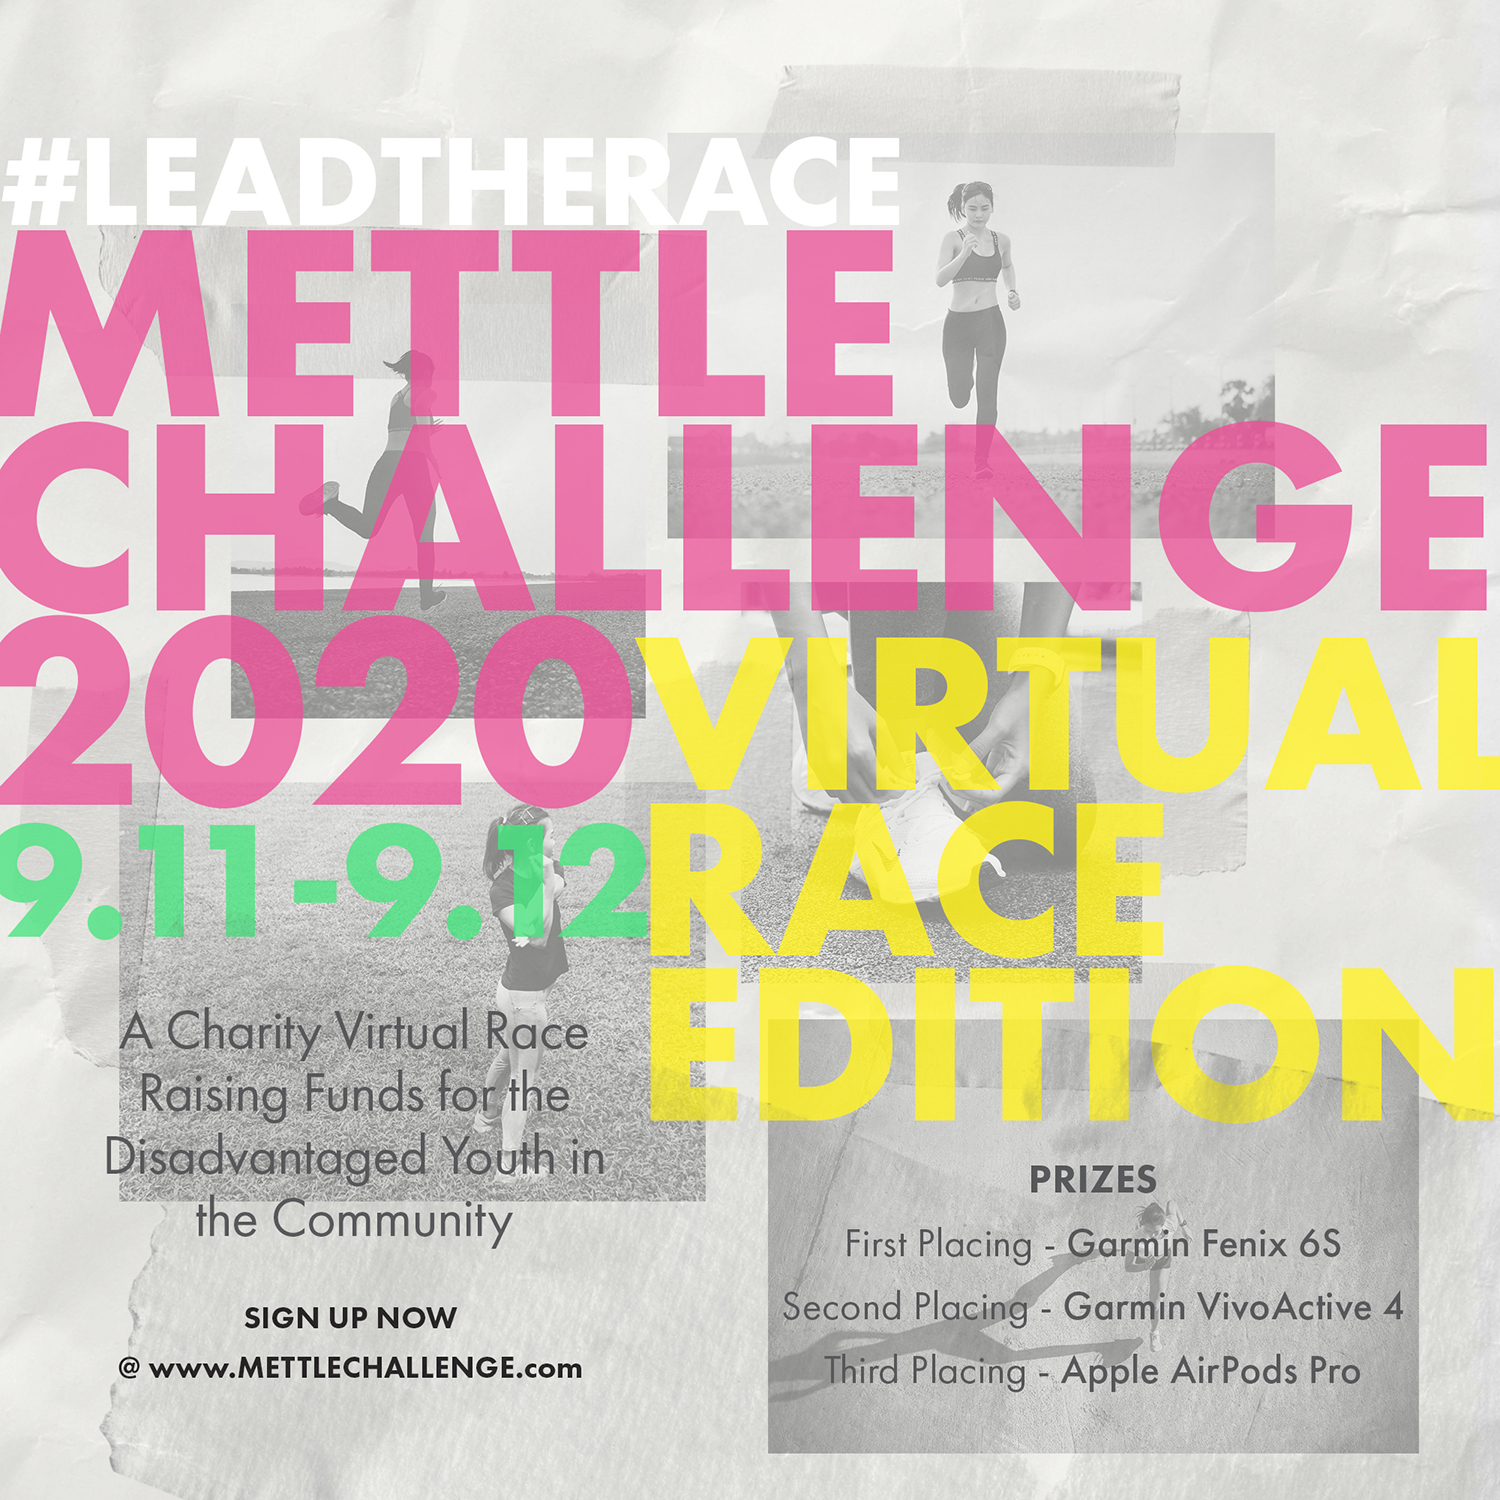 Logo of Mettle Challenge: #LEADTHERACE Virtual Run 2020